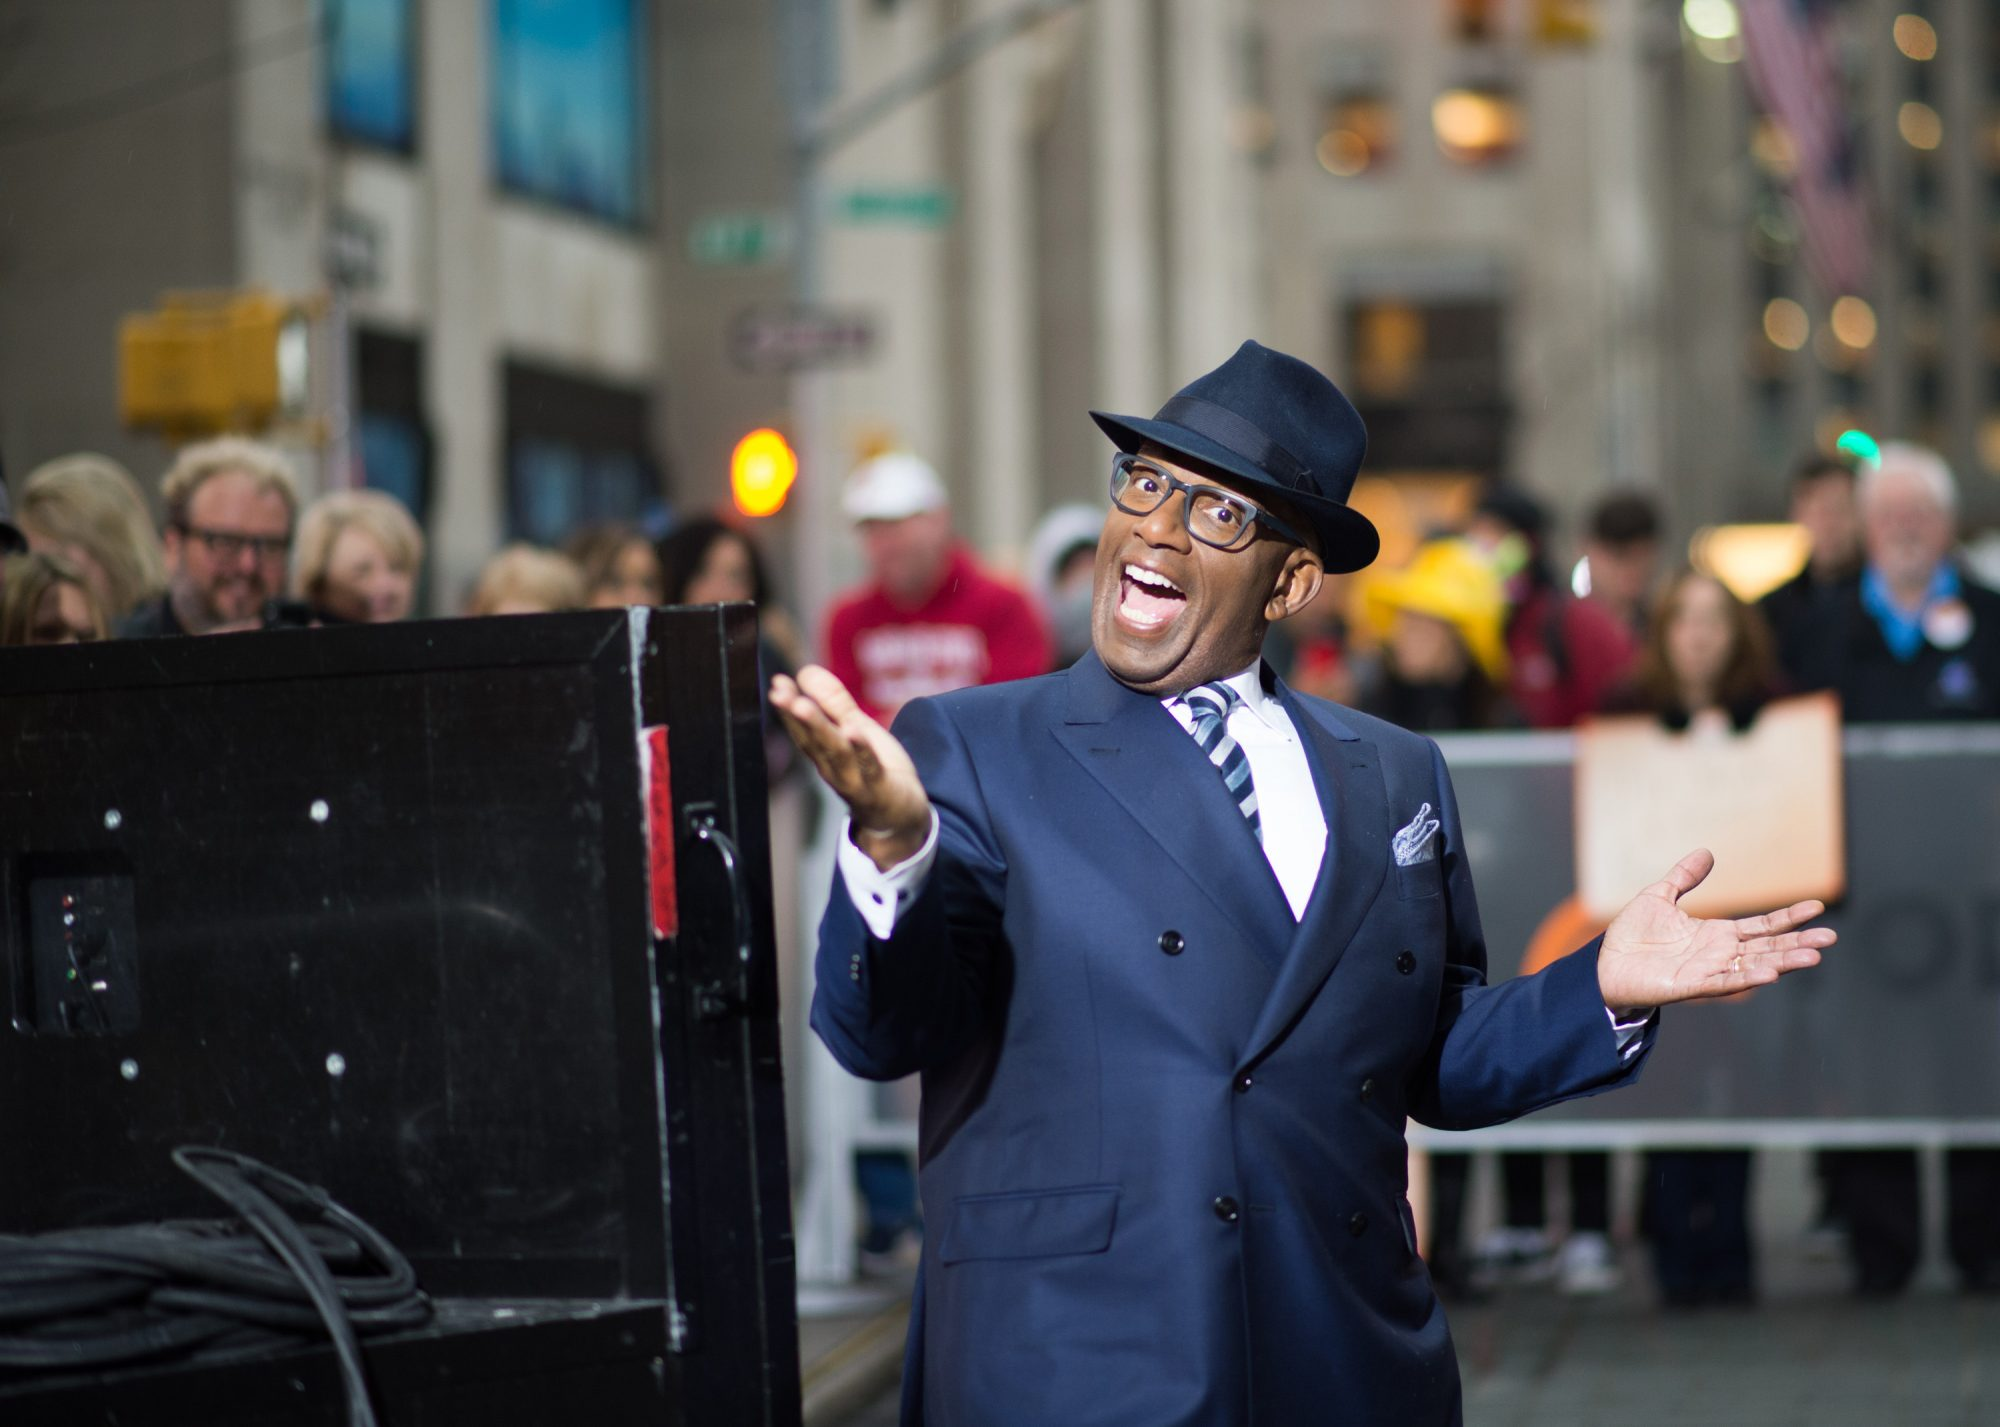 Al Roker Made a Web Series About His True Passion: Sandwiches